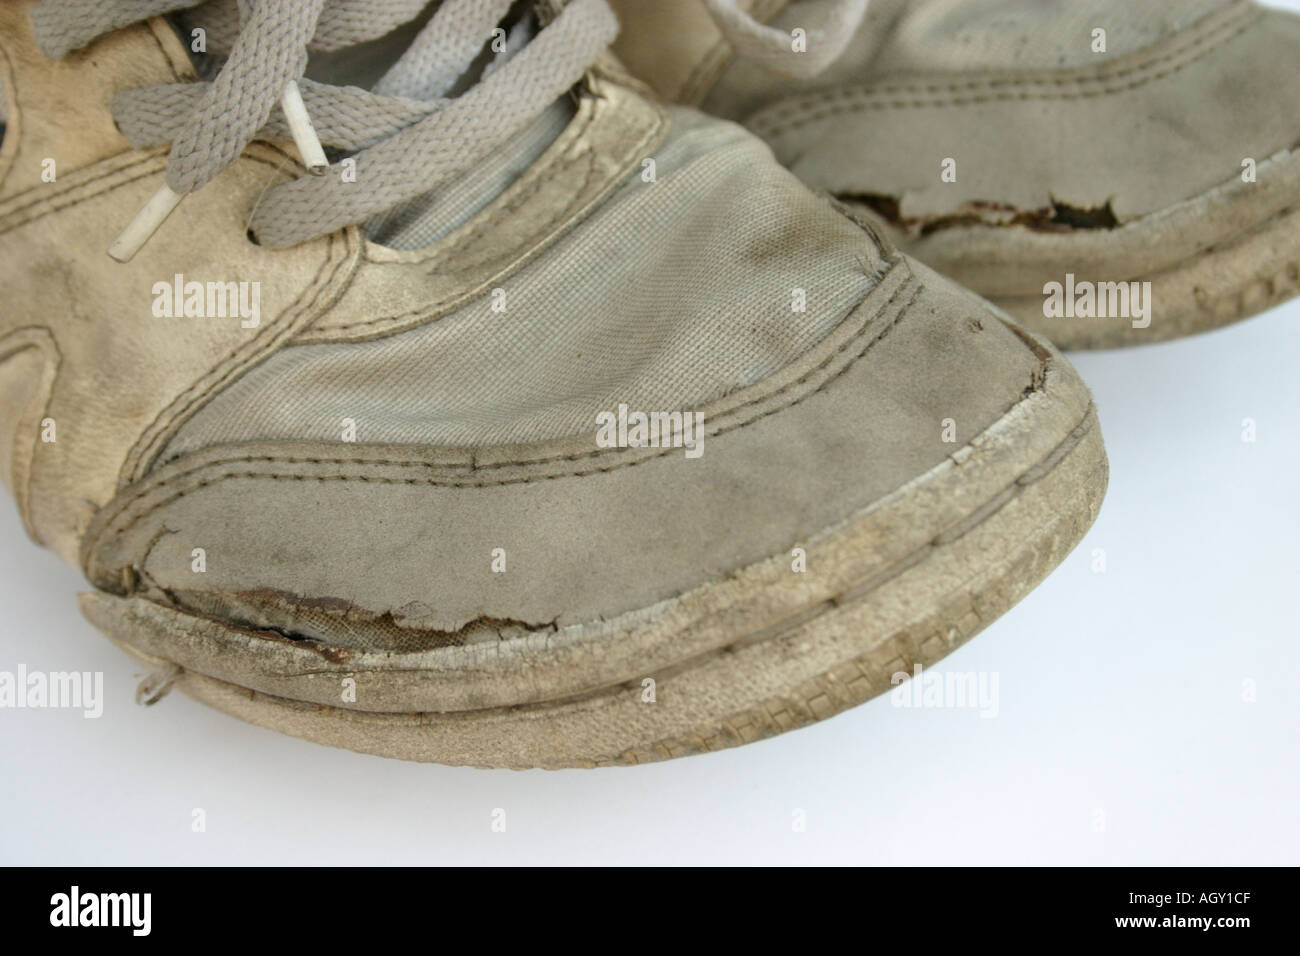 closeup of a pair of dirty old worn sneakers - Stock Image